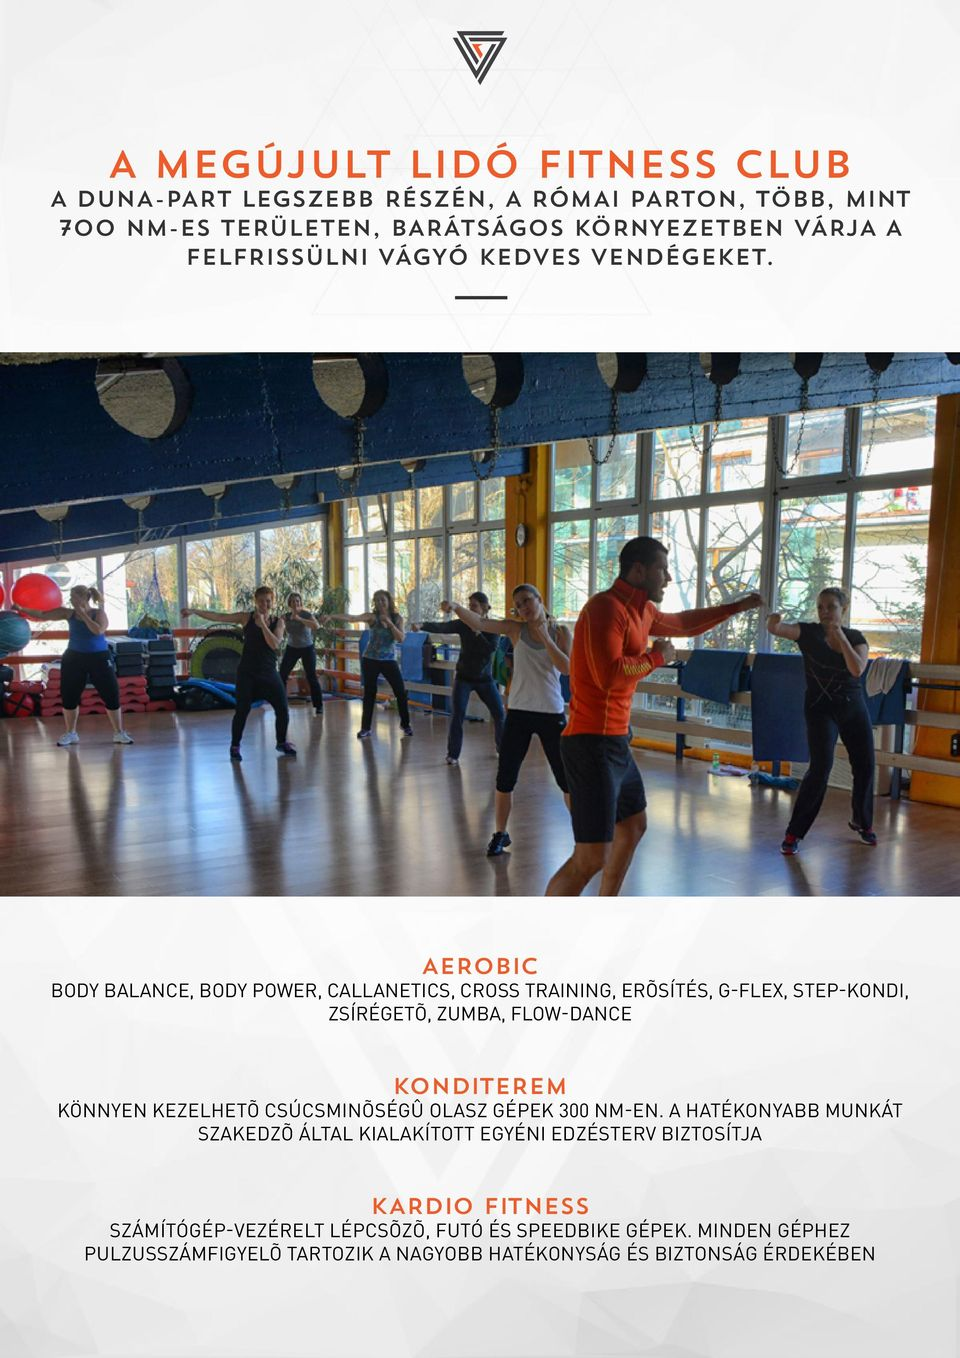 AEROBIC BODY BALANCE, BODY POWER, CALLANETICS, CROSS TRAINING, ERÕSÍTÉS, G-FLEX, STEP-KONDI, ZSÍRÉGETÕ, ZUMBA, FLOW-DANCE KONDITEREM KÖNNYEN